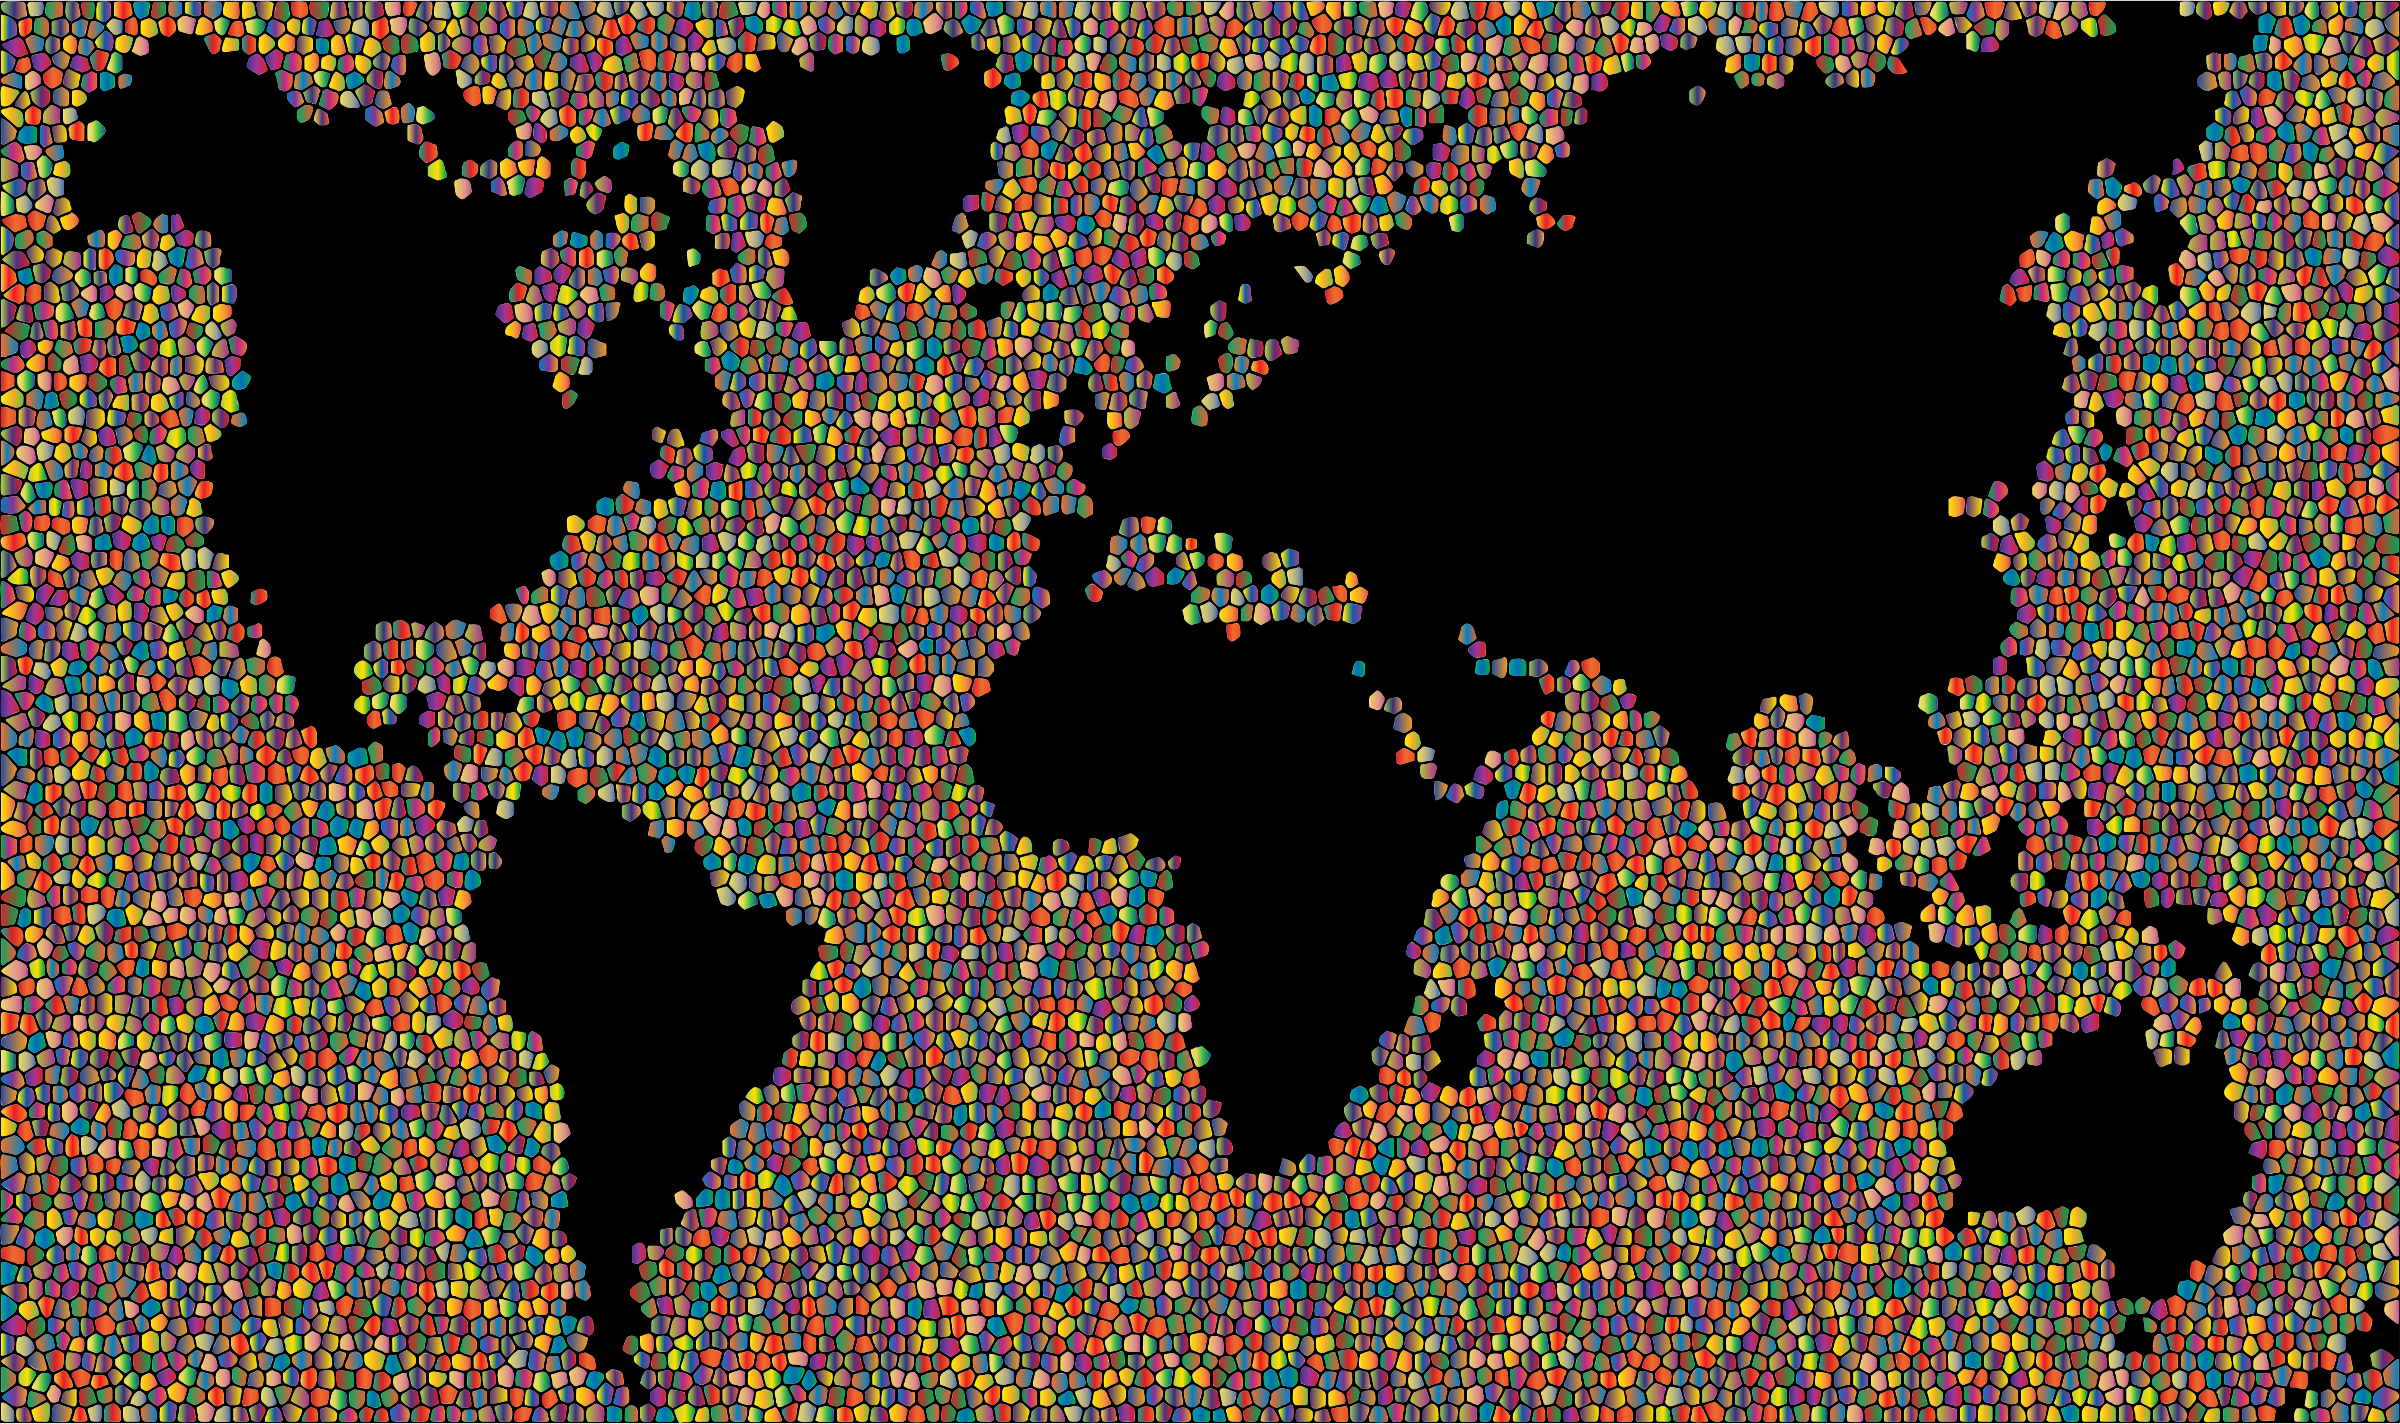 Clipart Colorful World Map Mosaic - Colorful world map